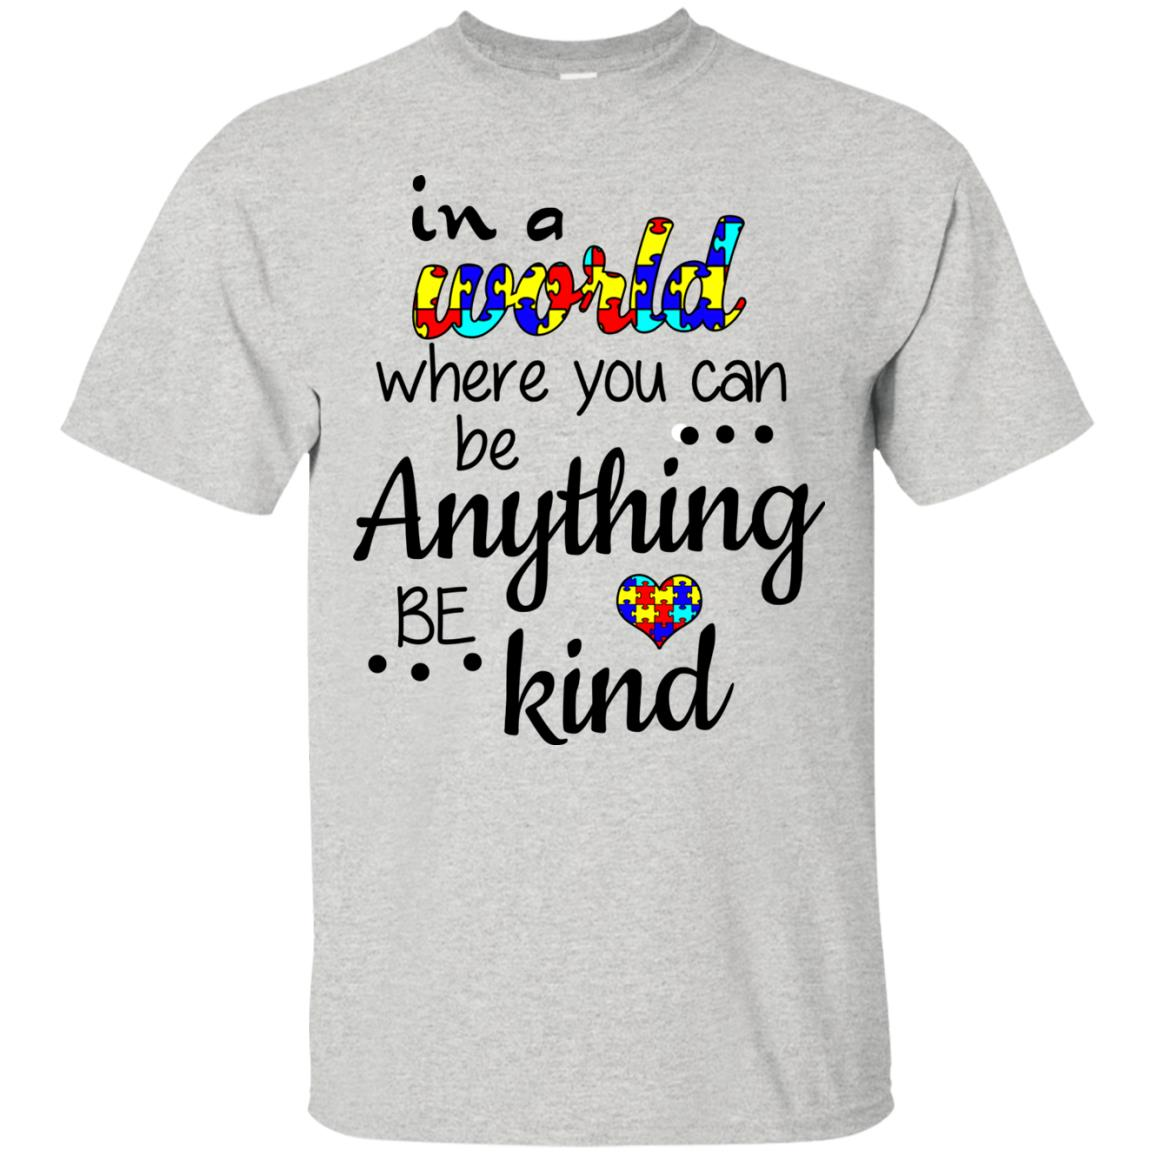 image 664 - Autism: In a World Where You Can Be Anything Be Kind Shirt